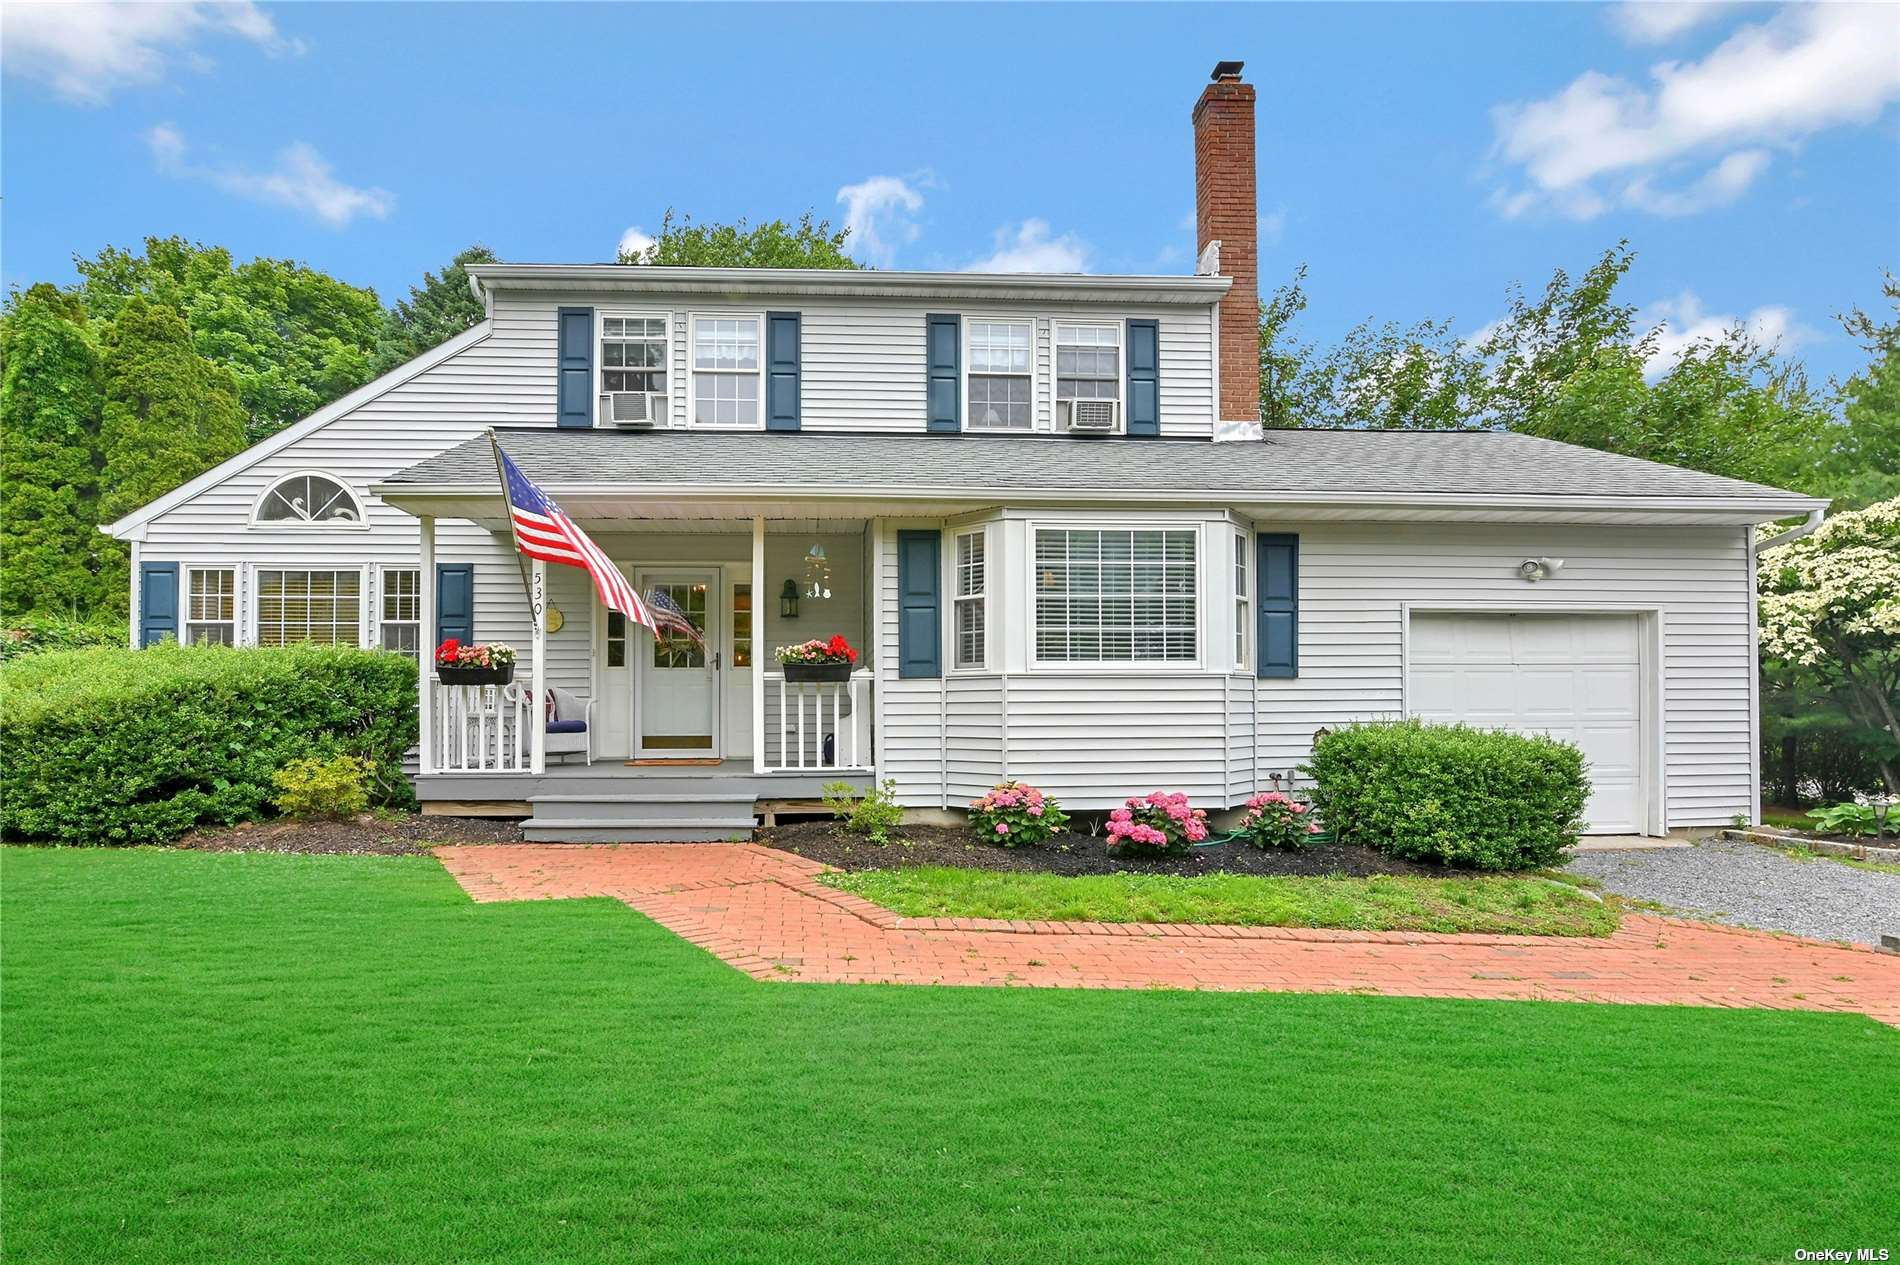 Summer getaway with an in-ground pool and close to beach. In the heart of all the North Fork has to offer. Seasonal rental, weekly price with a 14 night minimum